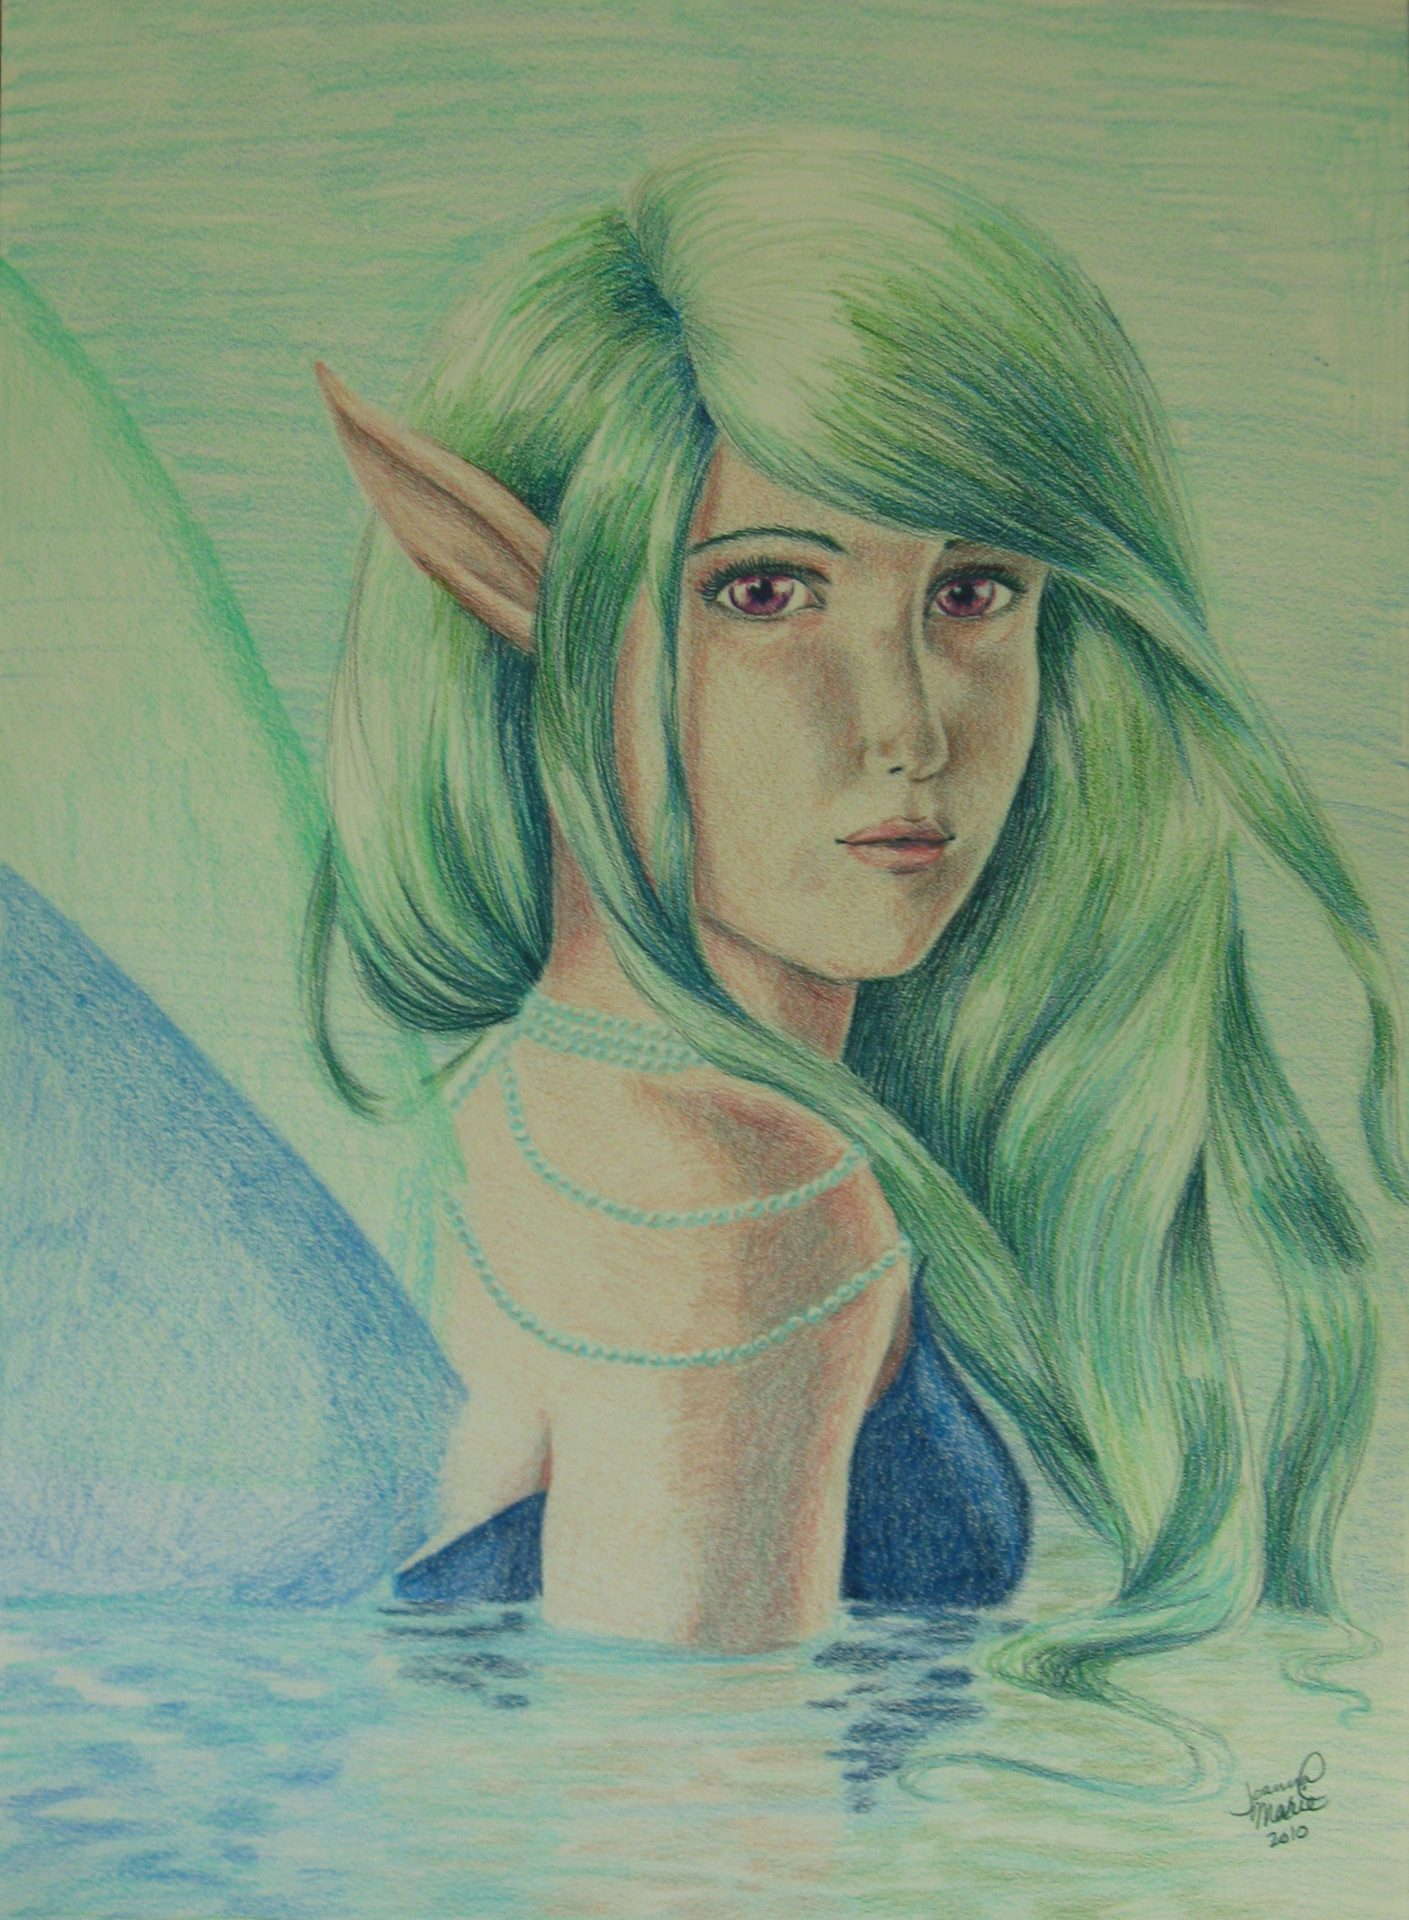 Water Faerie, 2010, 12x16, Colored Pencil